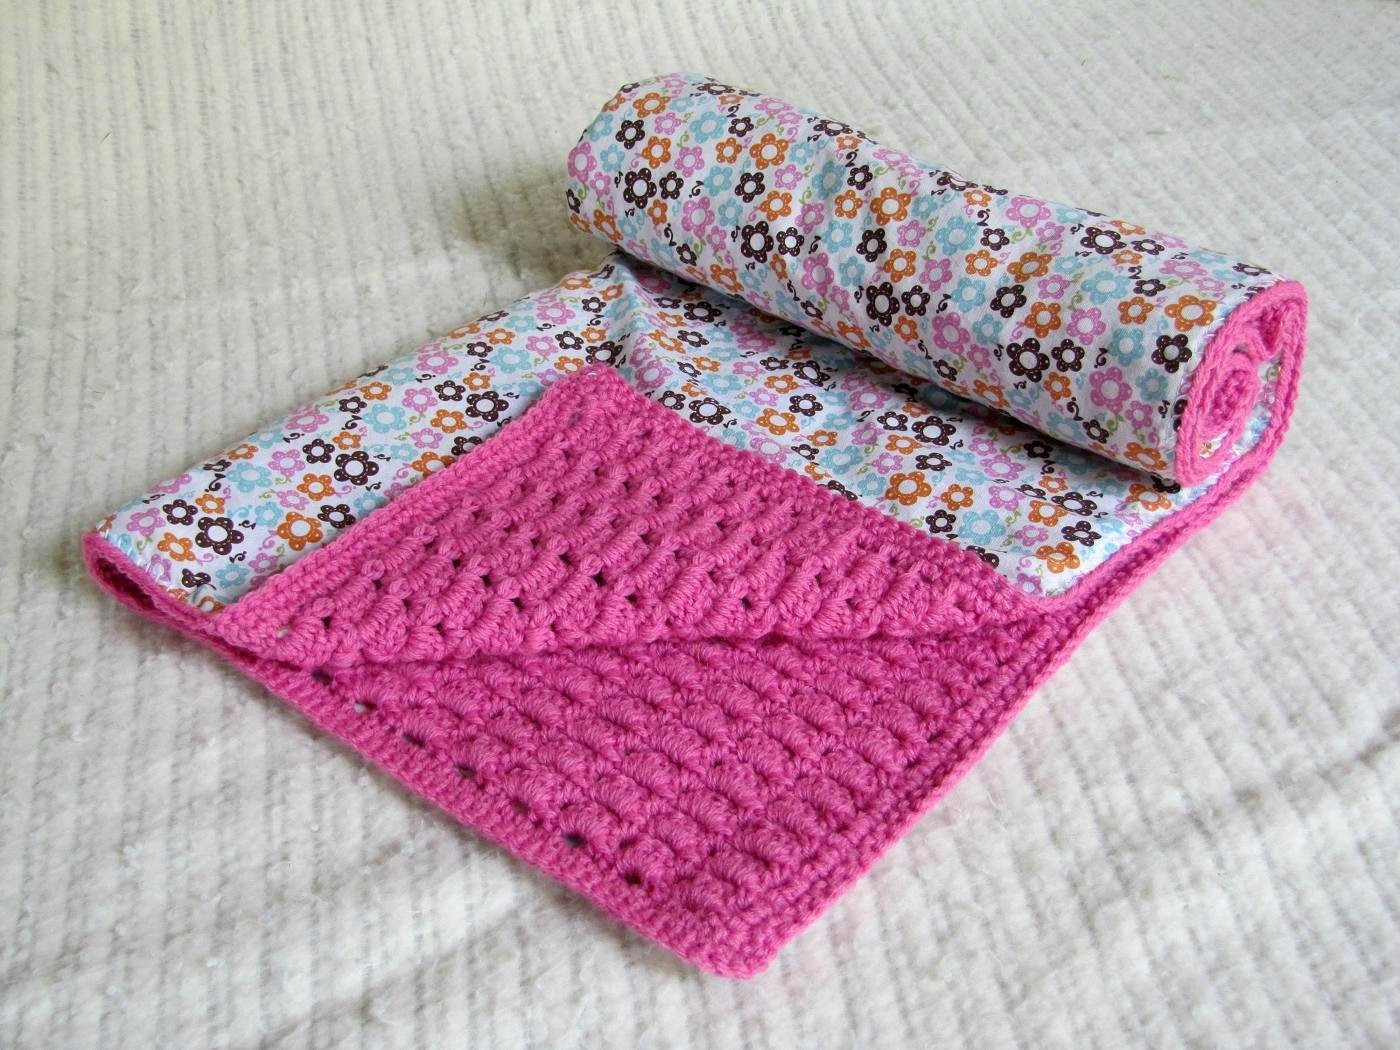 Free Crochet Baby Blanket Patterns Awesome Crochet Baby Blanket Patterns Free Of Superb 45 Pics Free Crochet Baby Blanket Patterns